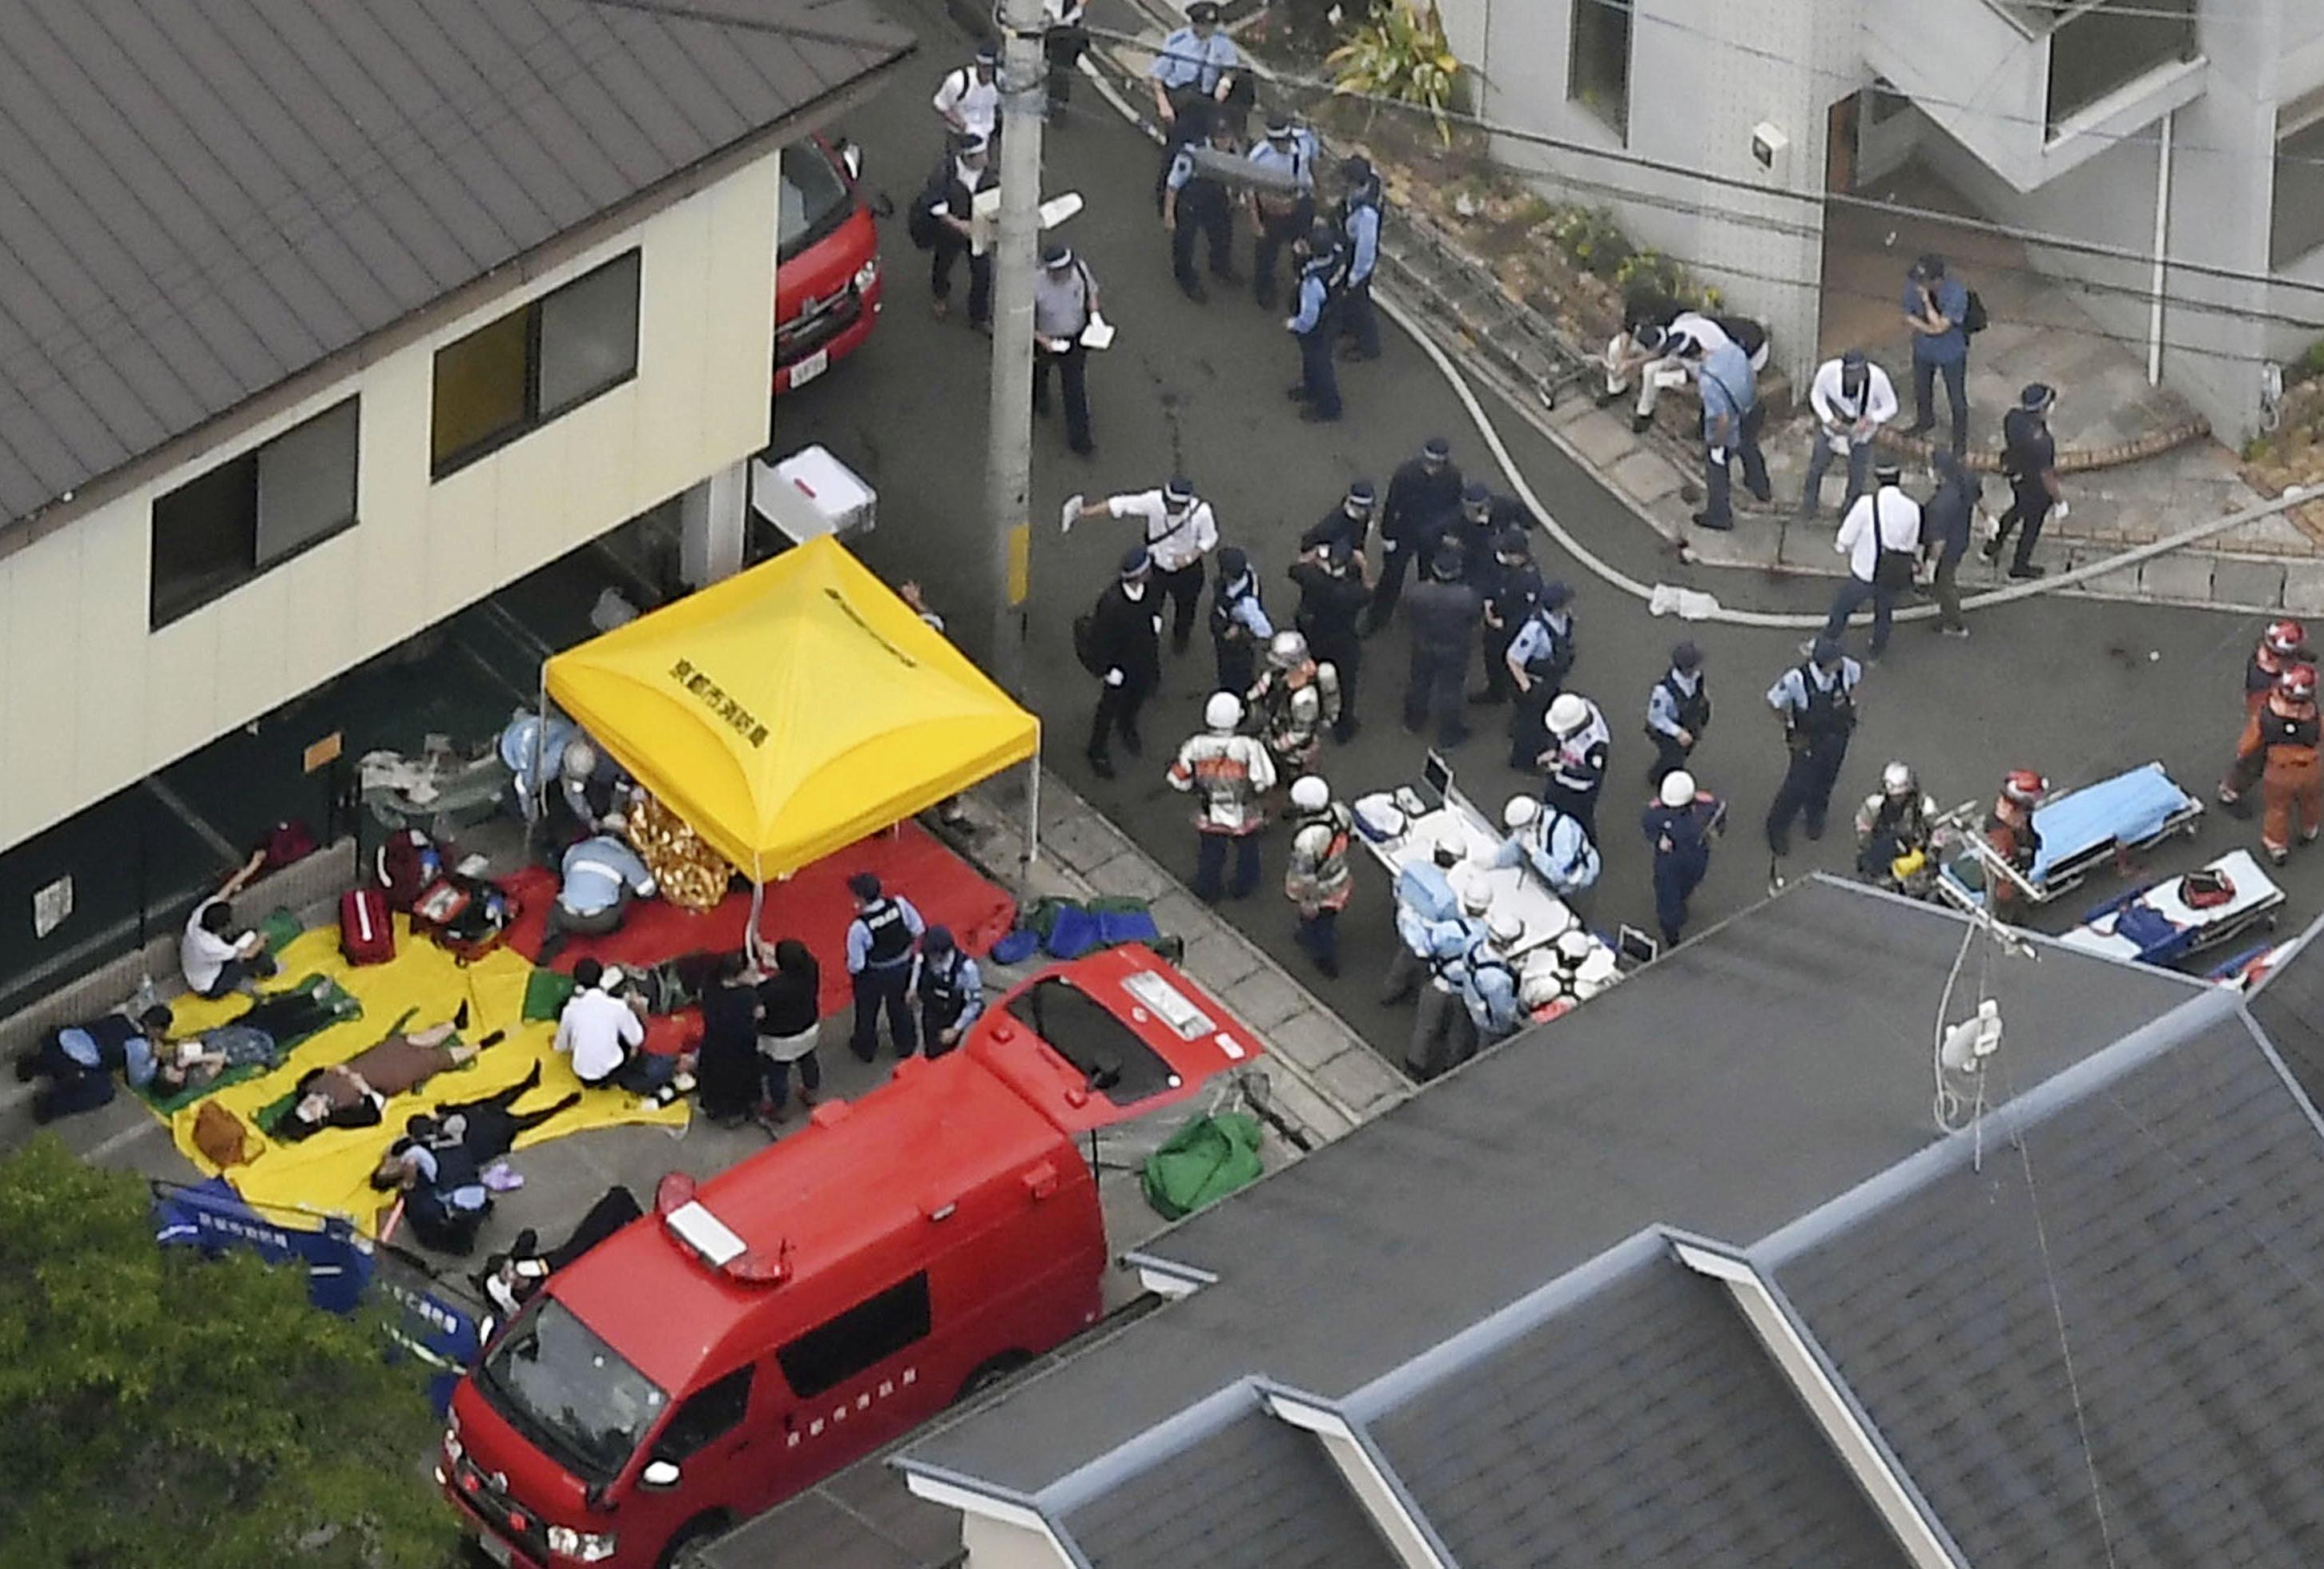 Rescue workers carry injured people from the three-story Kyoto Animation building which was torched in Kyoto, western Japan, in this photo taken by Kyodo July 18, 2019.